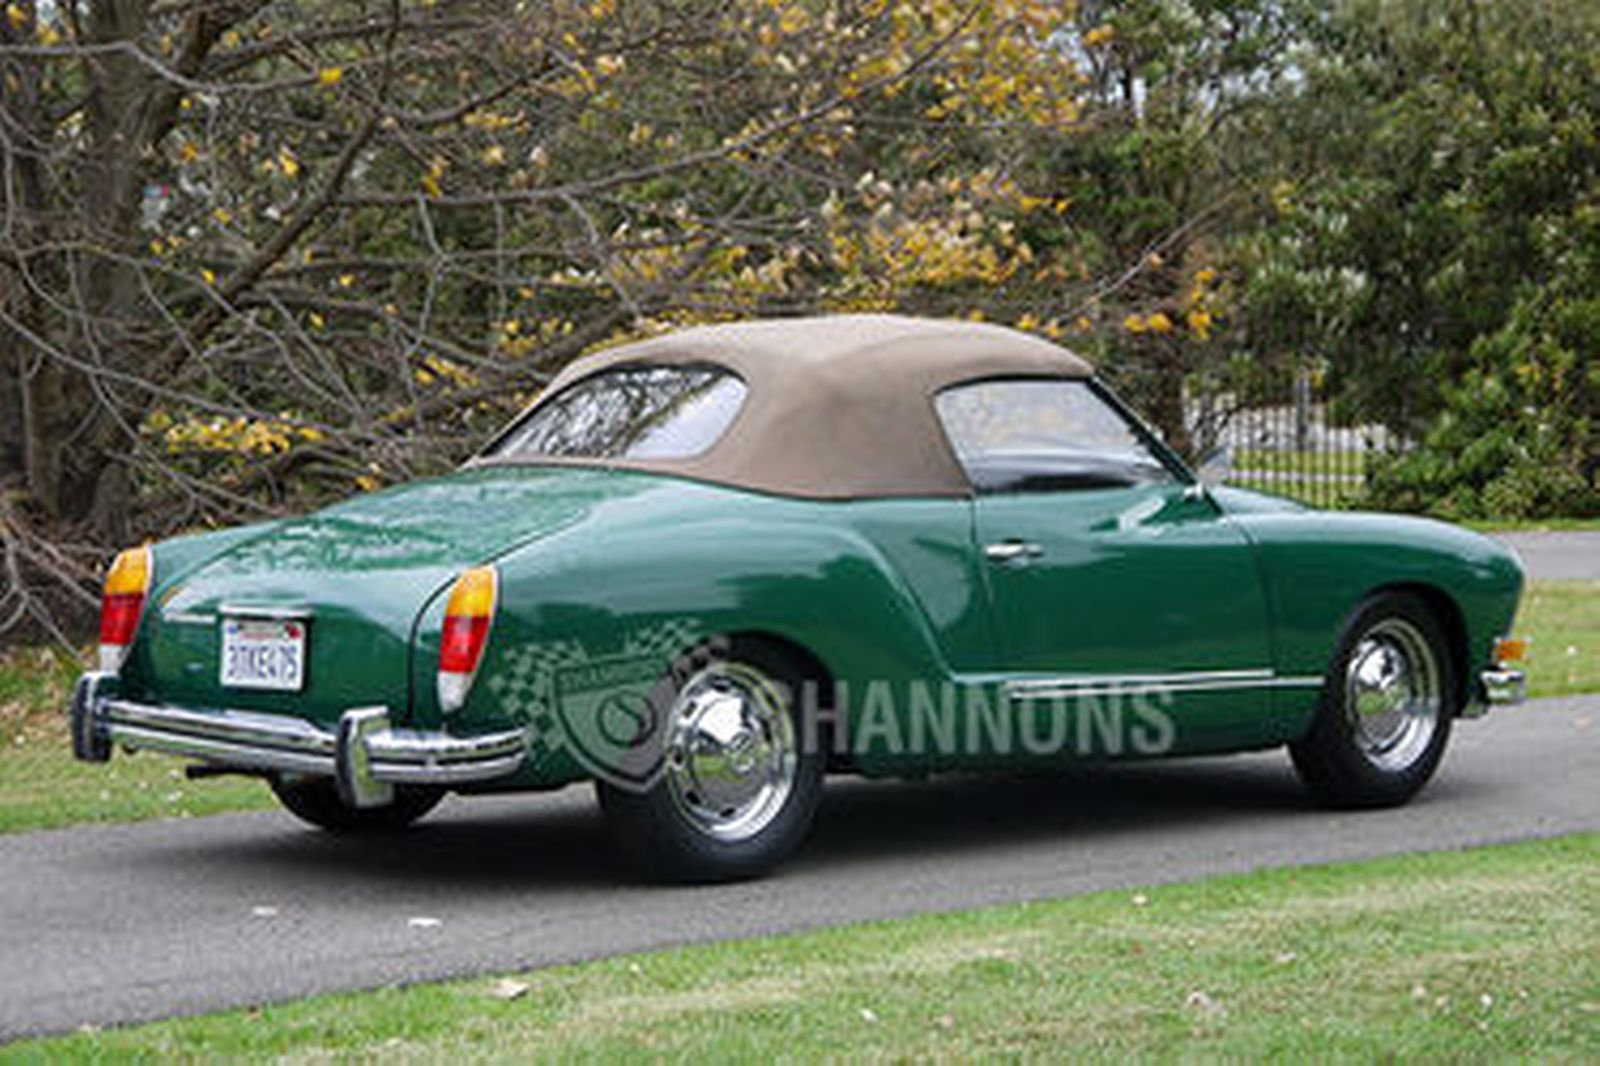 Sold: Volkswagen Karmann Ghia Convertible (LHD) Auctions - Lot 9 - Shannons